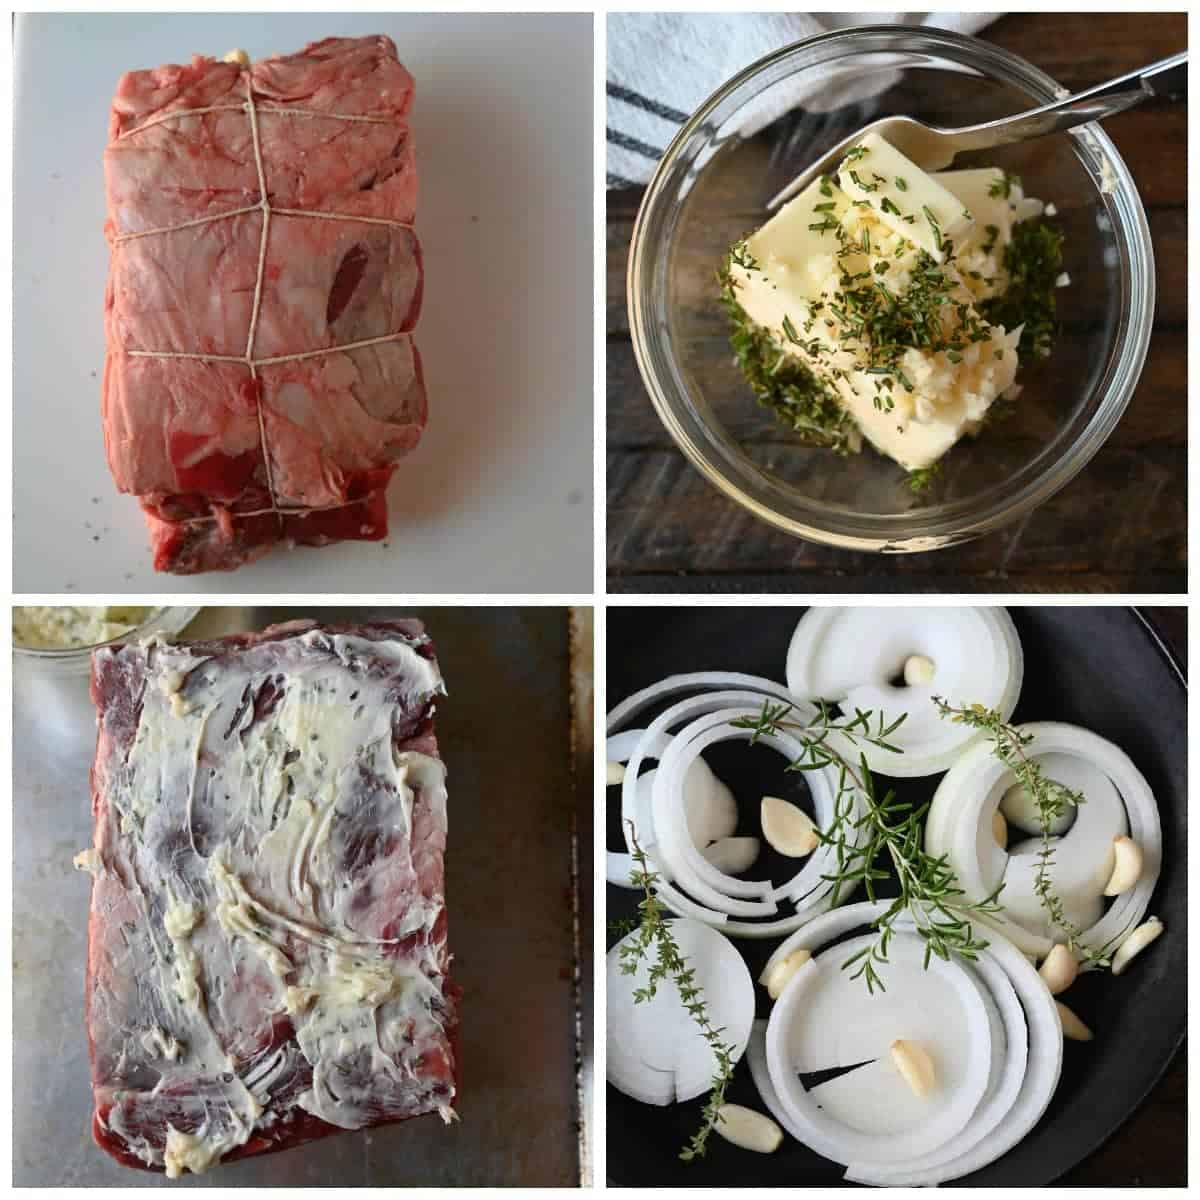 Four process shots. First one, rib eye roast tied up with twine to hole it together while roasting. Second one, butter, herbs and garlic in a bowl to be mixed and put on the roast. Third one, butter mixture spread on top of the roast. Fourth one, thick onion slices with garlic cloves, thyme, and rosemary in a cast iron skillet.